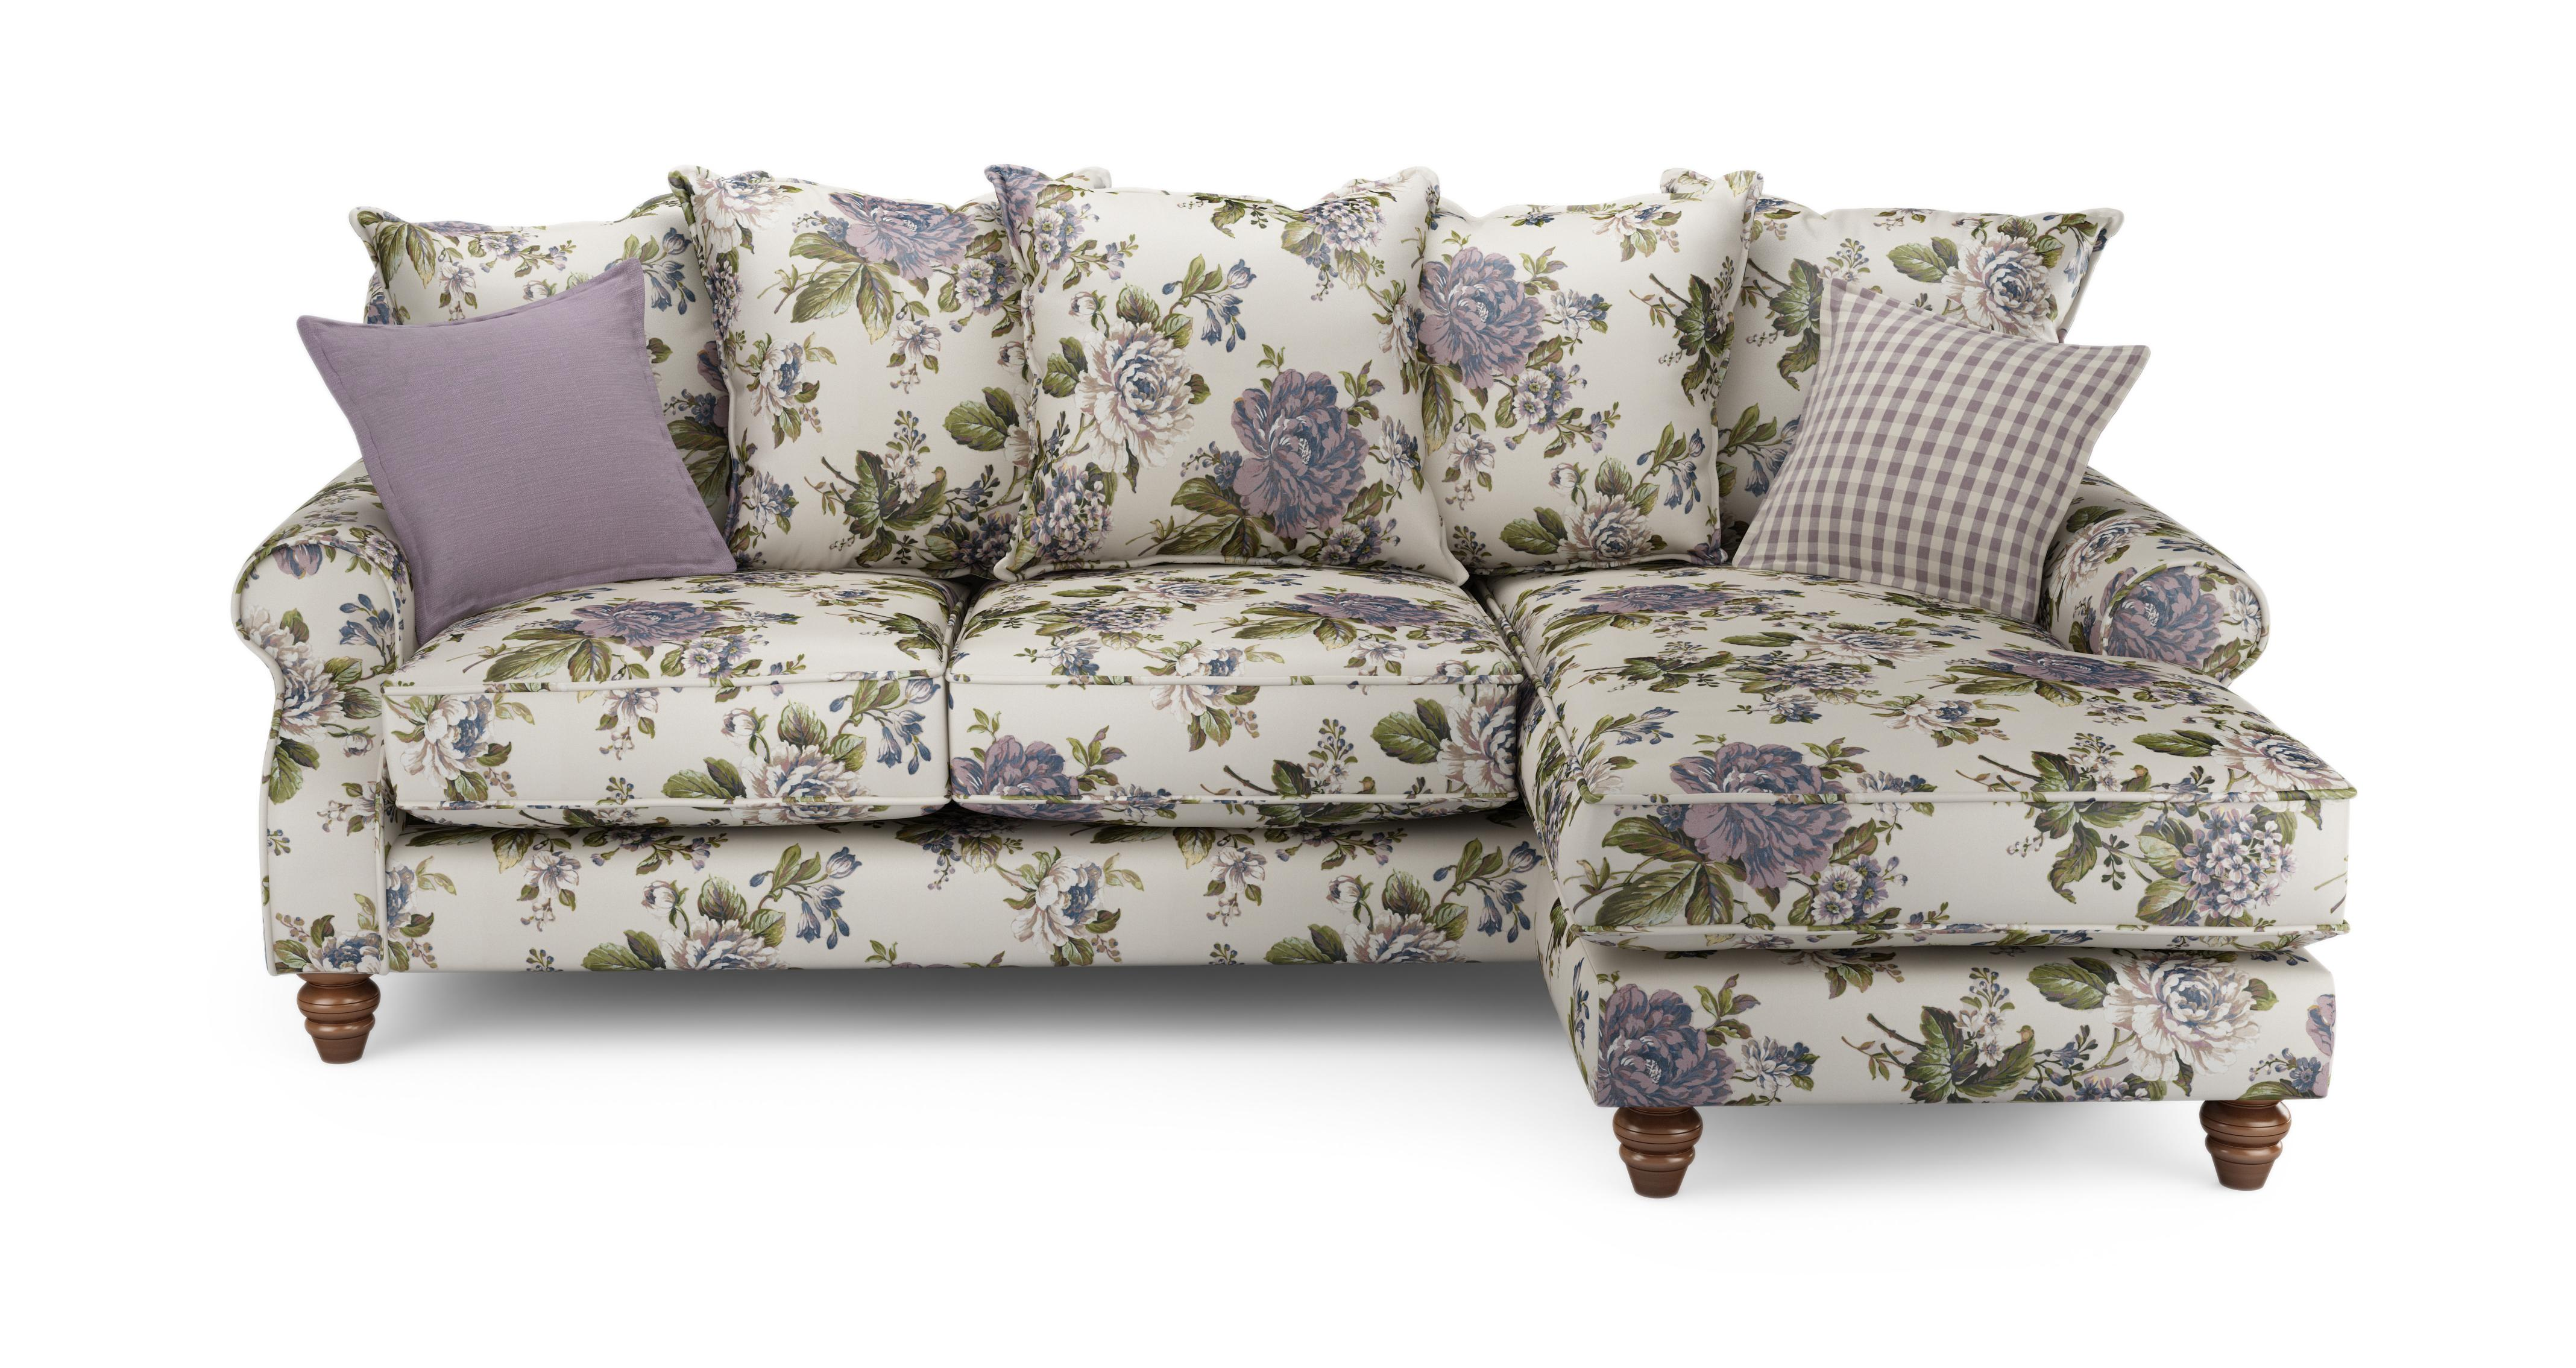 Ellie Floral Right Hand Facing 4 Seater Chaise End Sofa Ellie